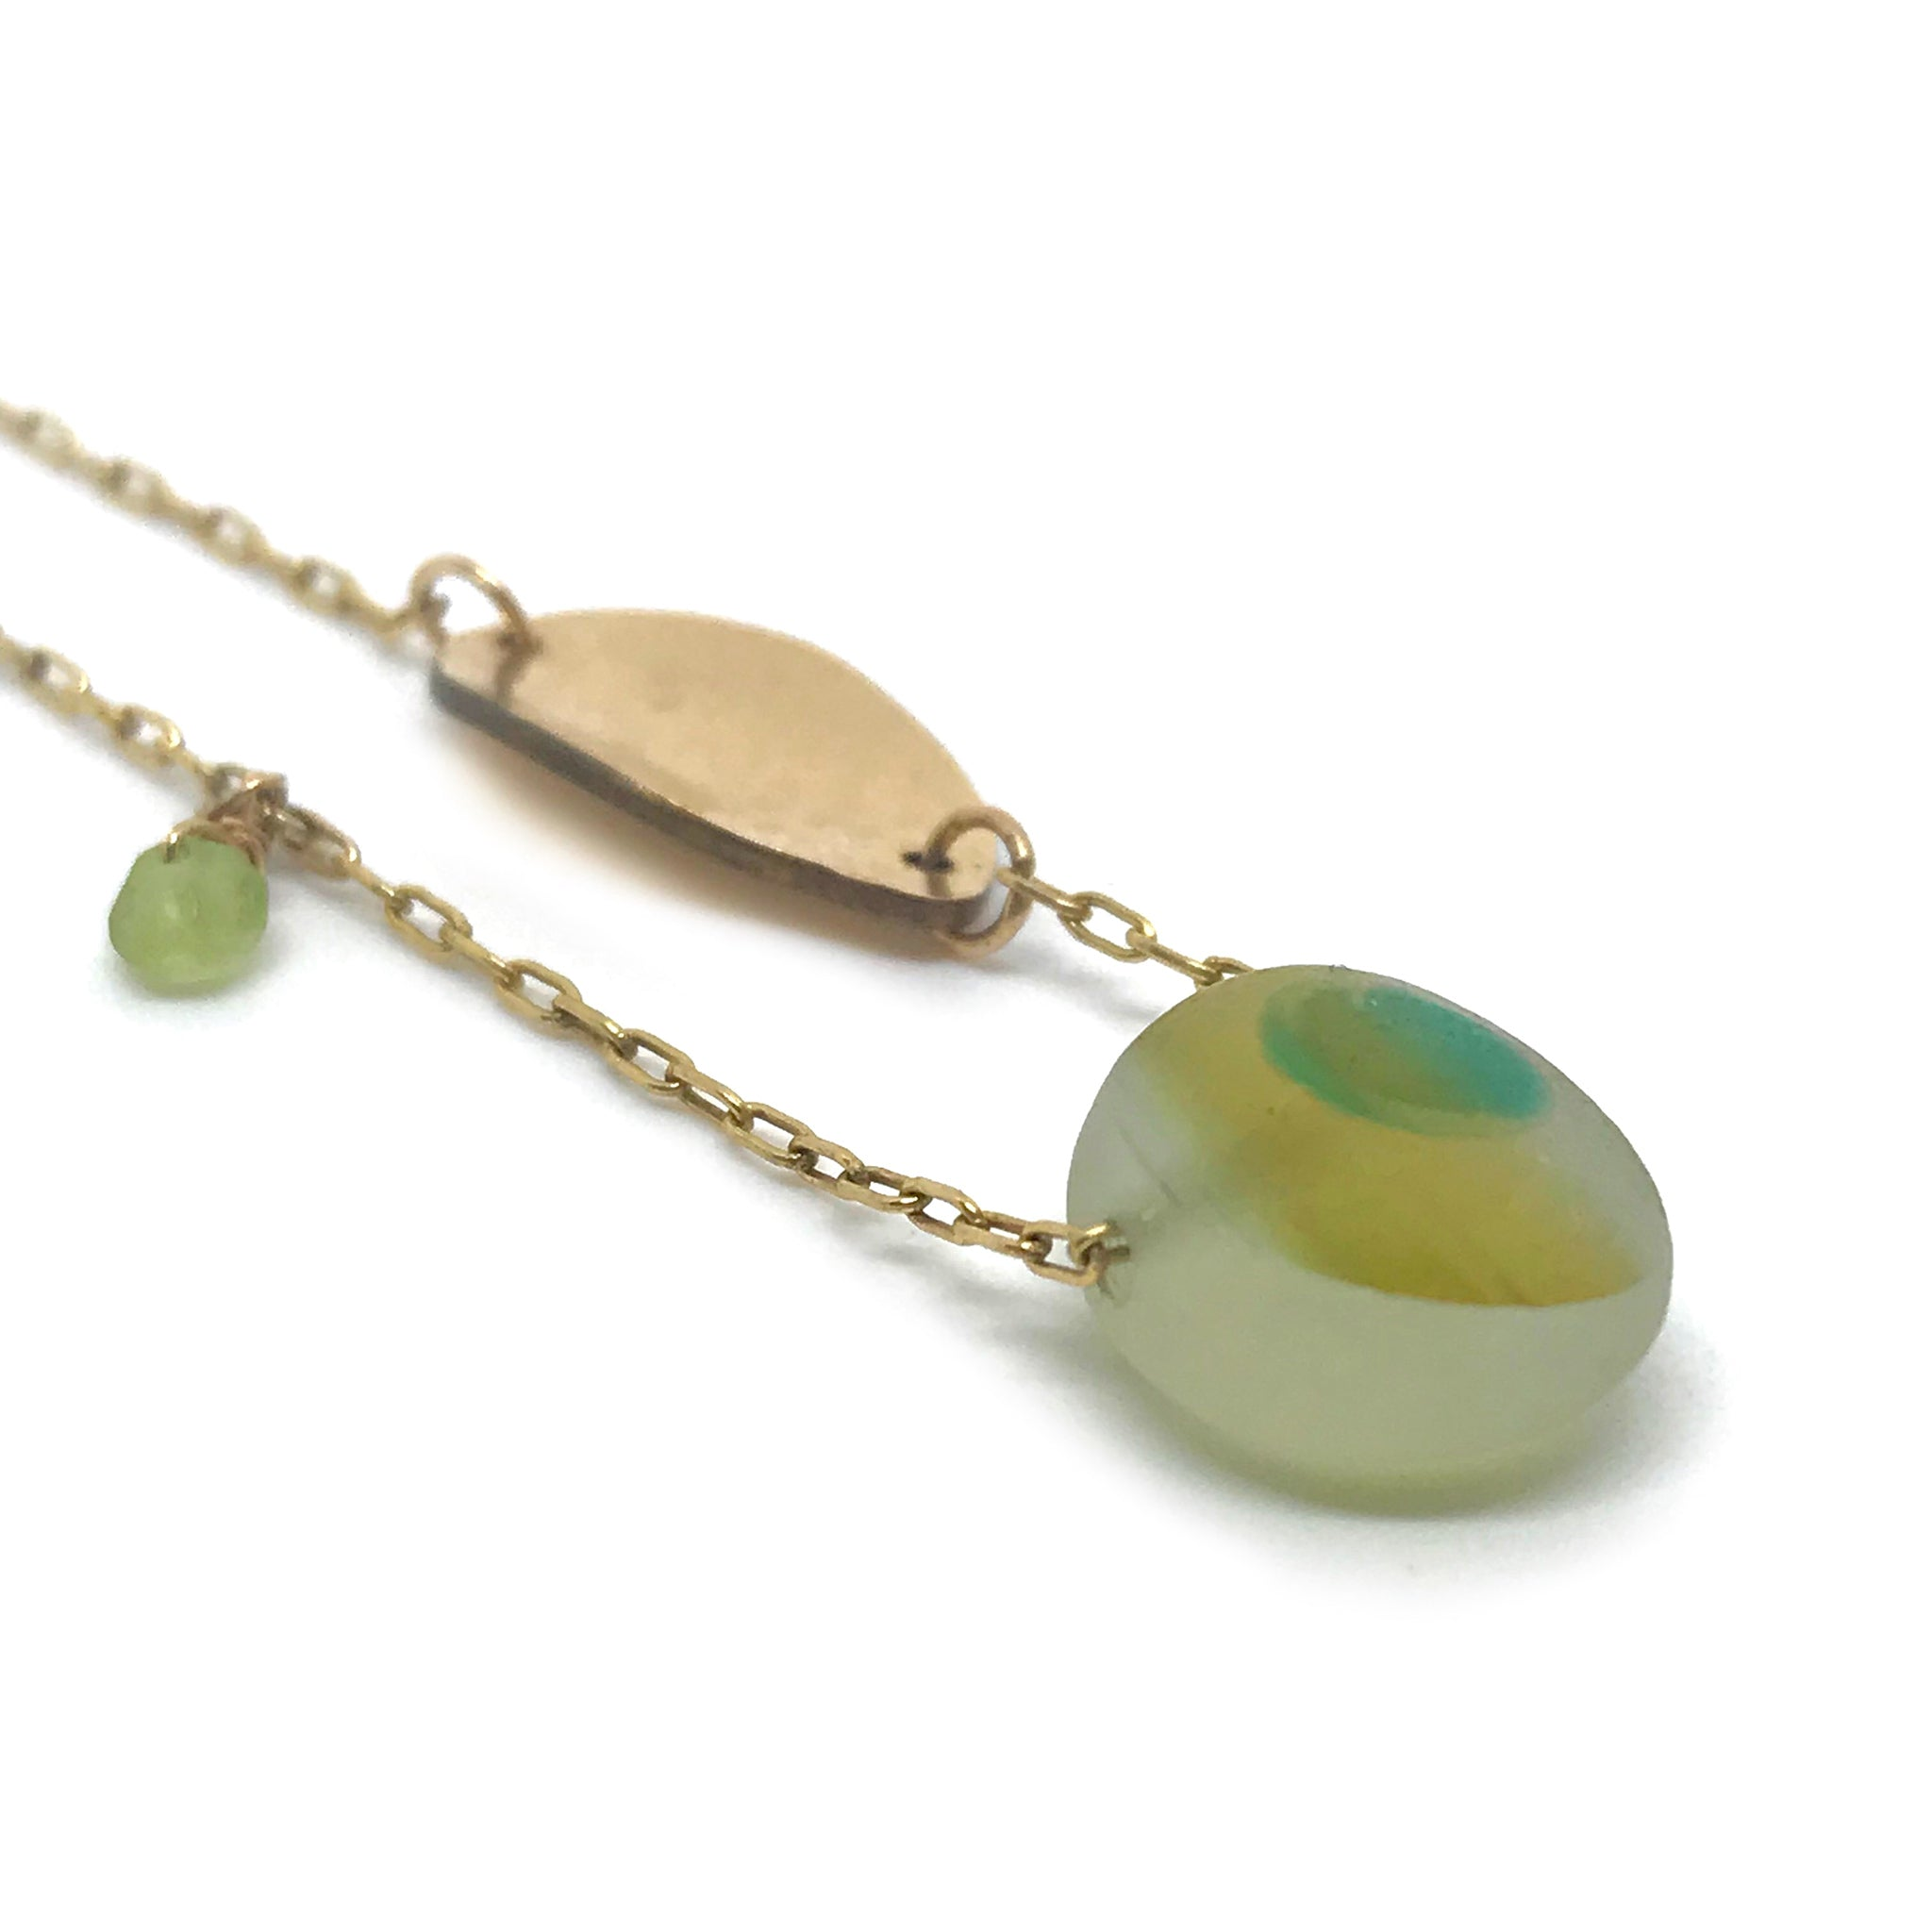 Multi-coloured Seaglass Necklace on Gold chain - kriket broadhurst jewellery